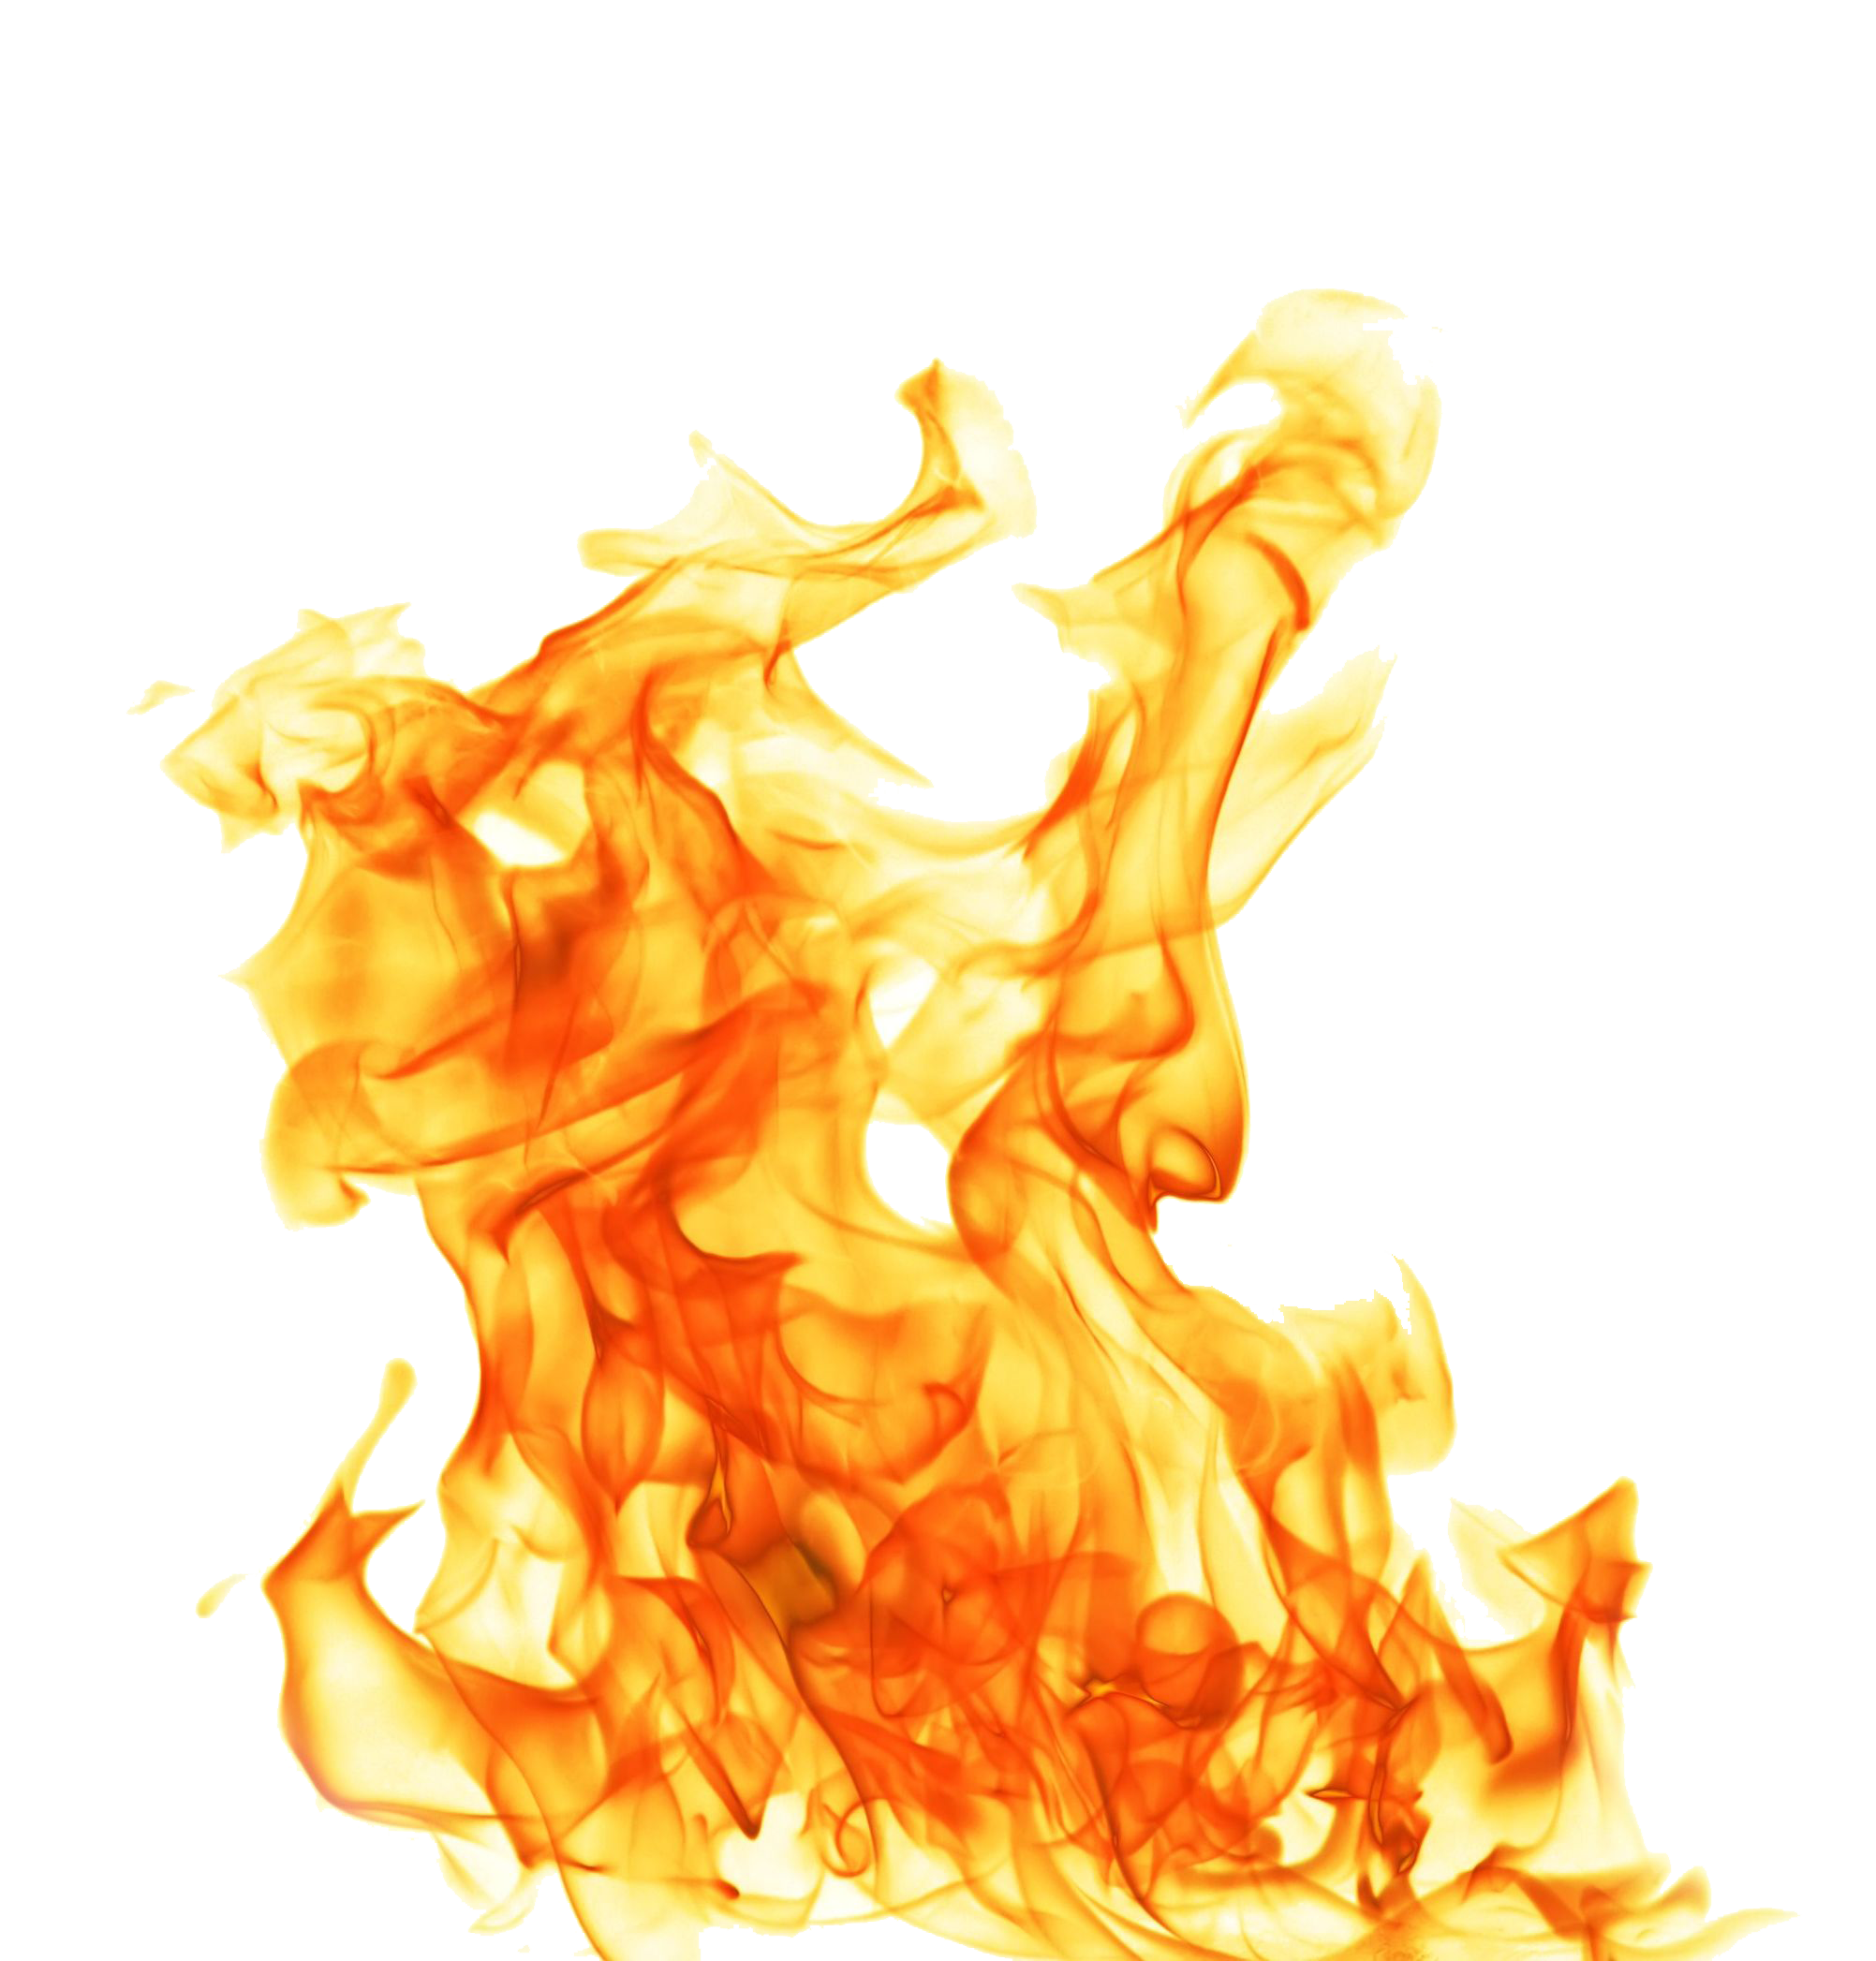 Fire png transparent. Images free